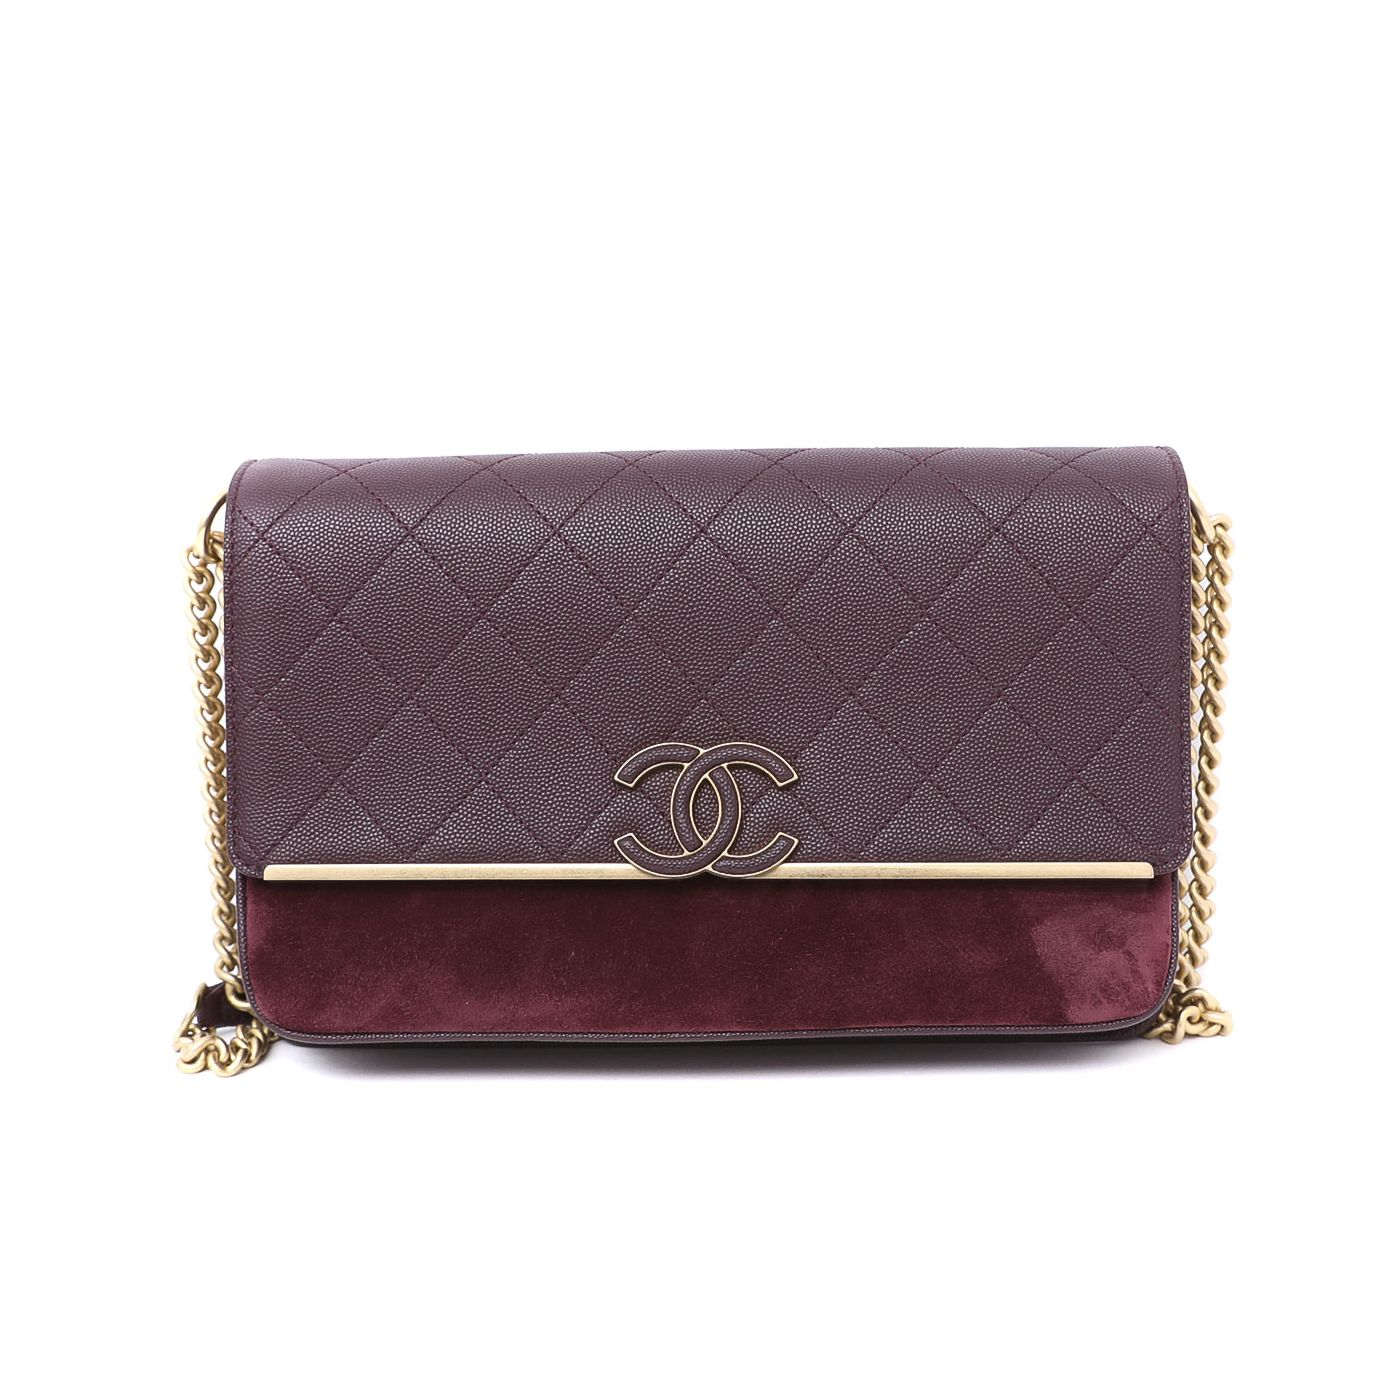 Chanel Burgundy Lady Coco Flap Bag Medium